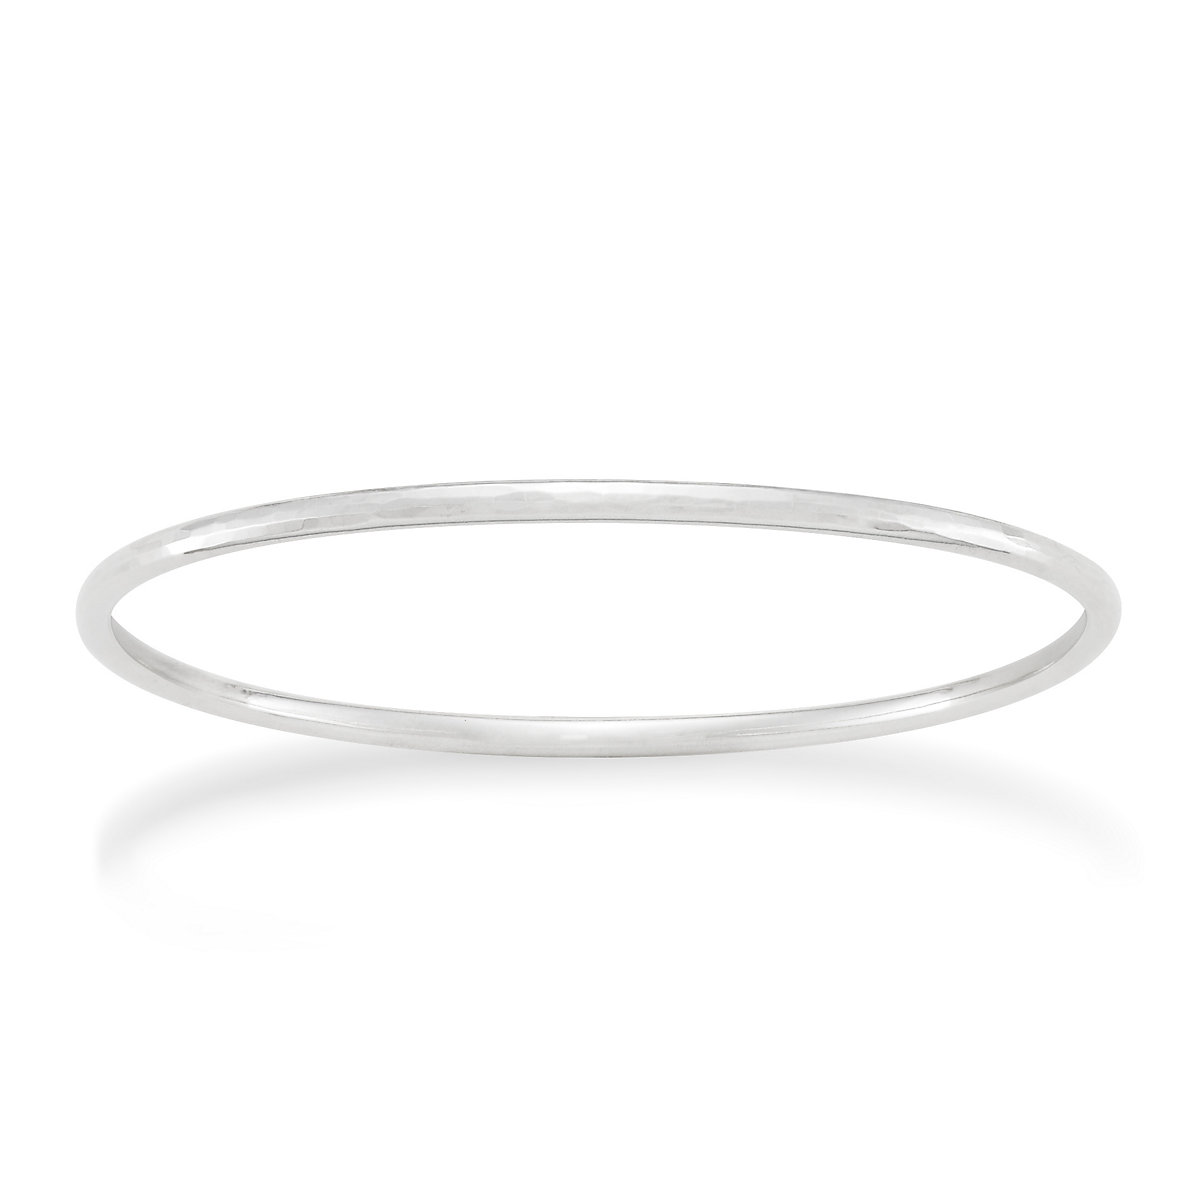 in thin lyst jewelry bangle bangles bracelet silver kors bracelets hinged gallery michael product oval metallic